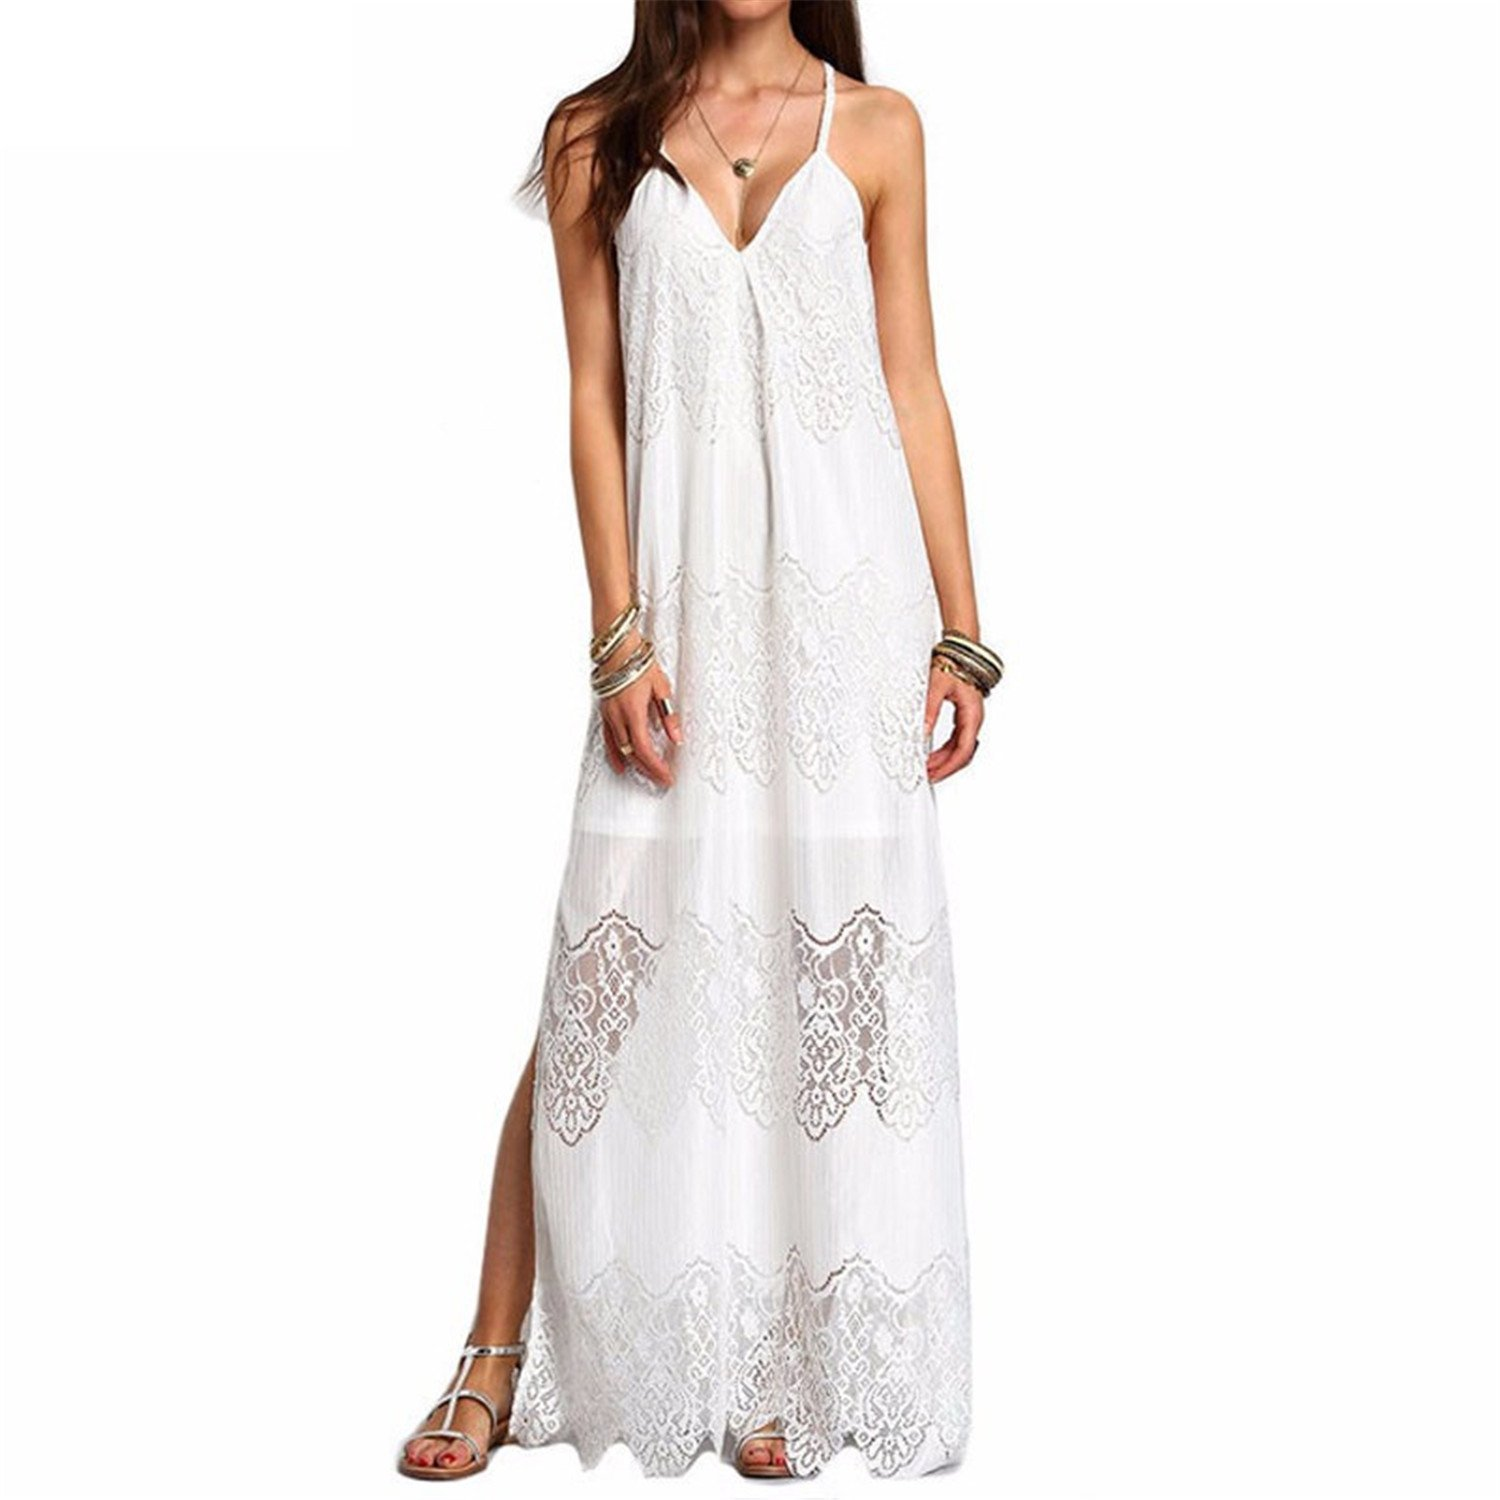 Amazon.com: SuperBlu Fashion Long Maxi Dresses NEW Women Boho Vestidos Summer Beach Wear Cream Deep V Neck Split Slip Sleeveless Dresses Plus Size: Clothing